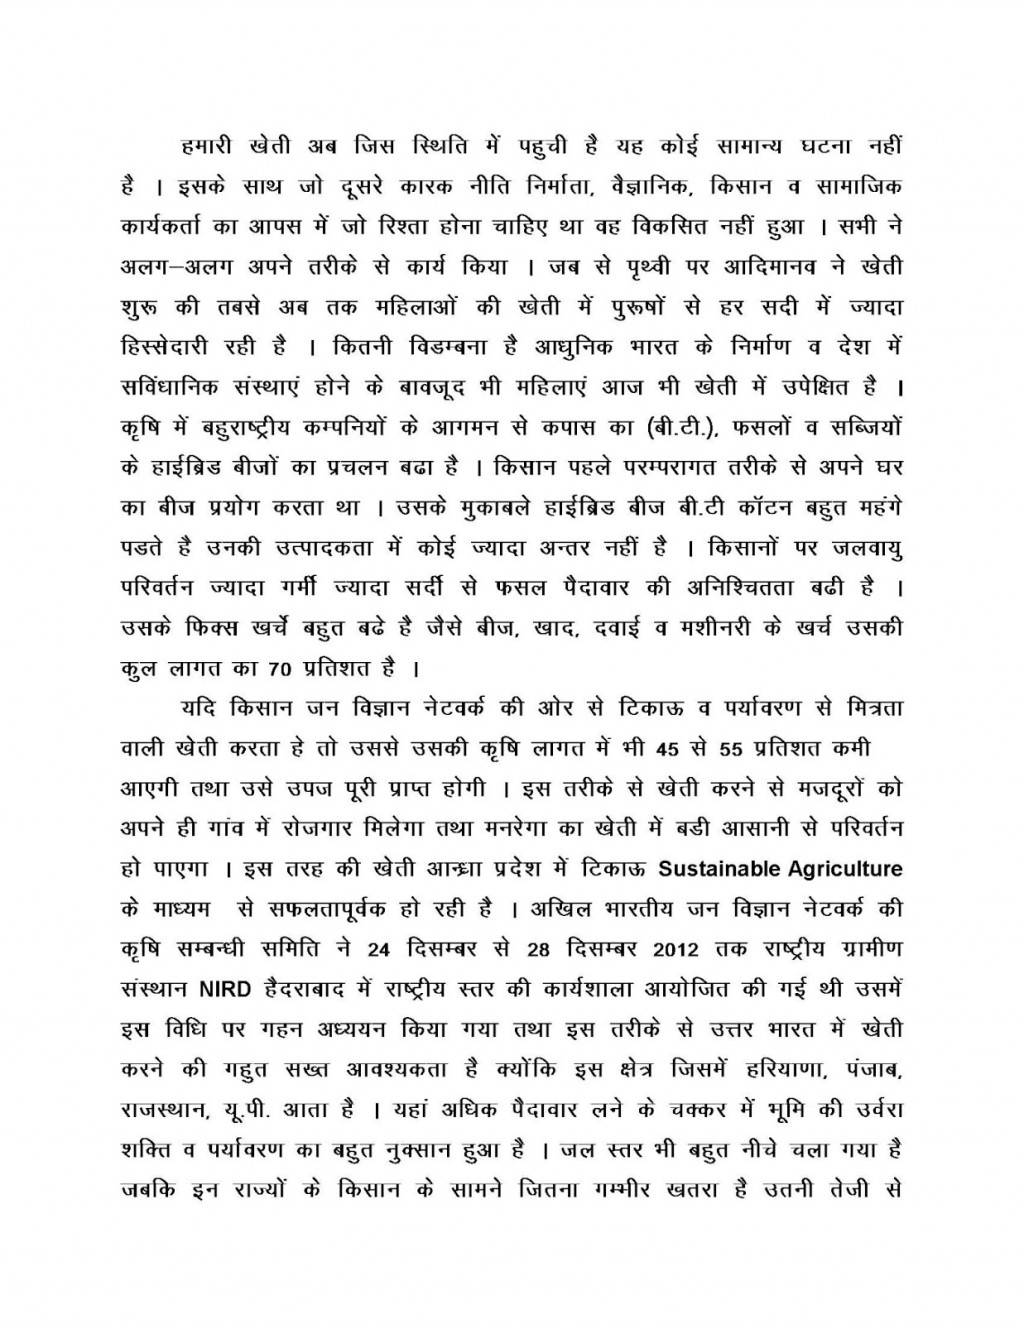 008 Essay Example Hindiworkdr Rajindersingh Page 3 Formidable Equality Conclusion Gender Wikipedia In Hindi Of Opportunity Large